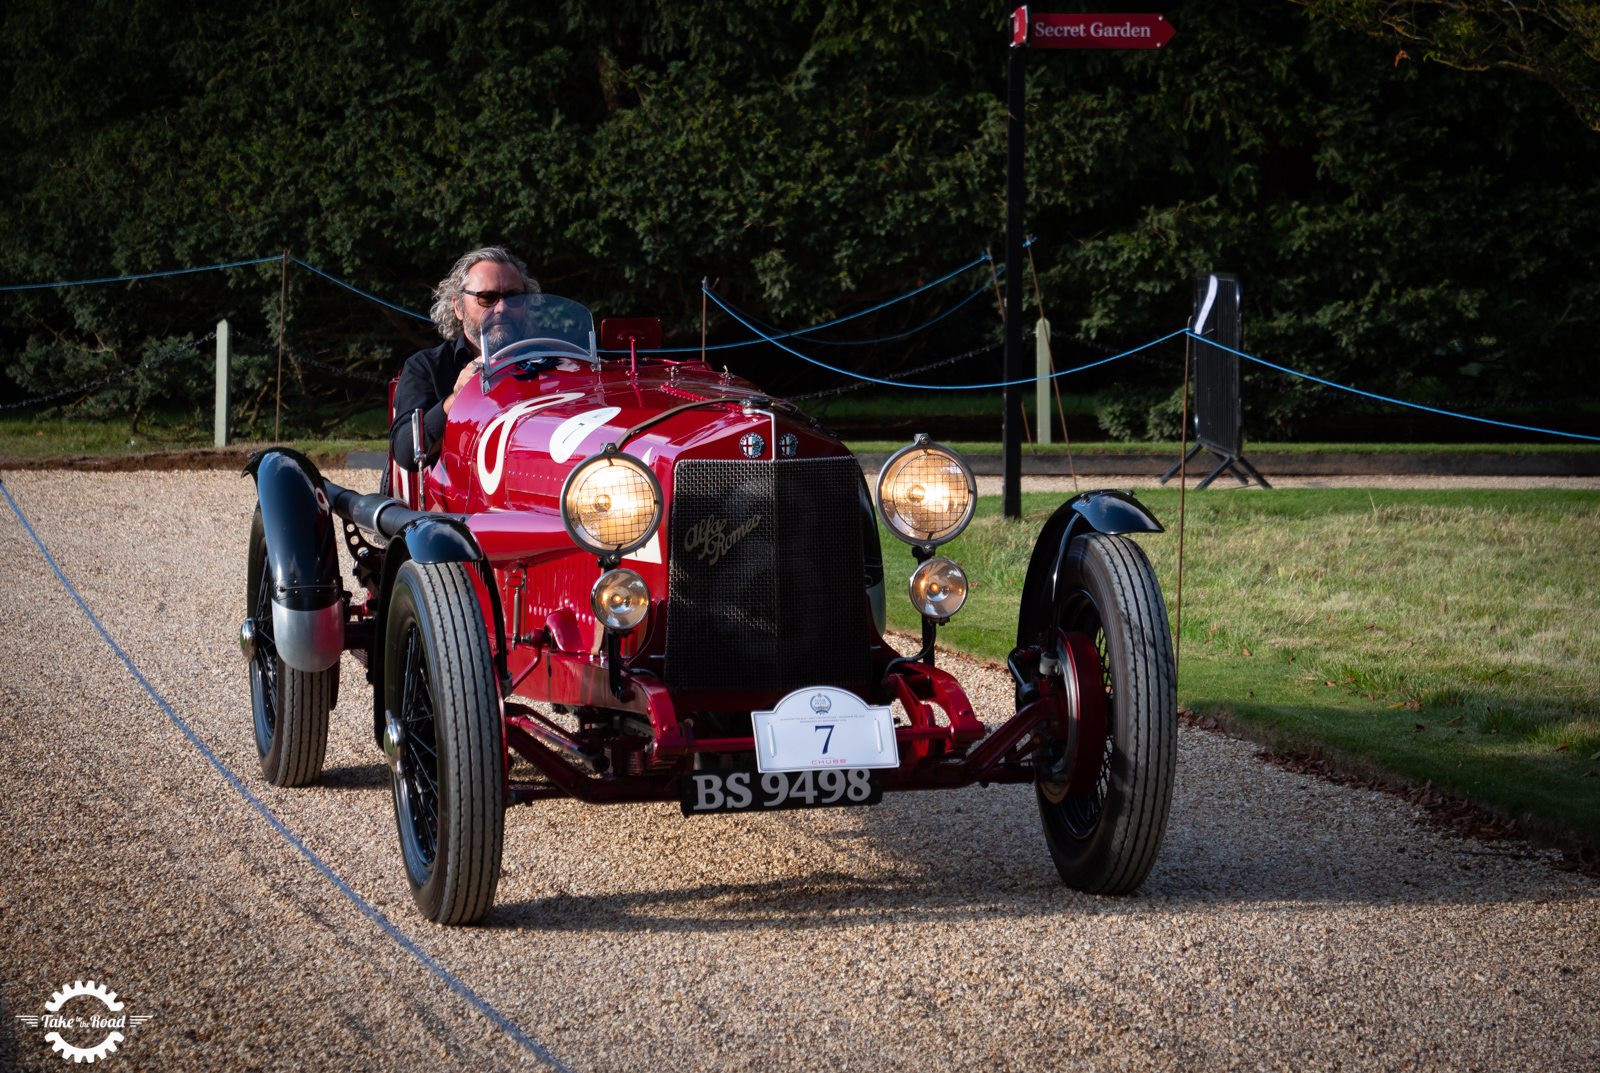 Highlights from Salon Prive Concours D'Elegance 2019